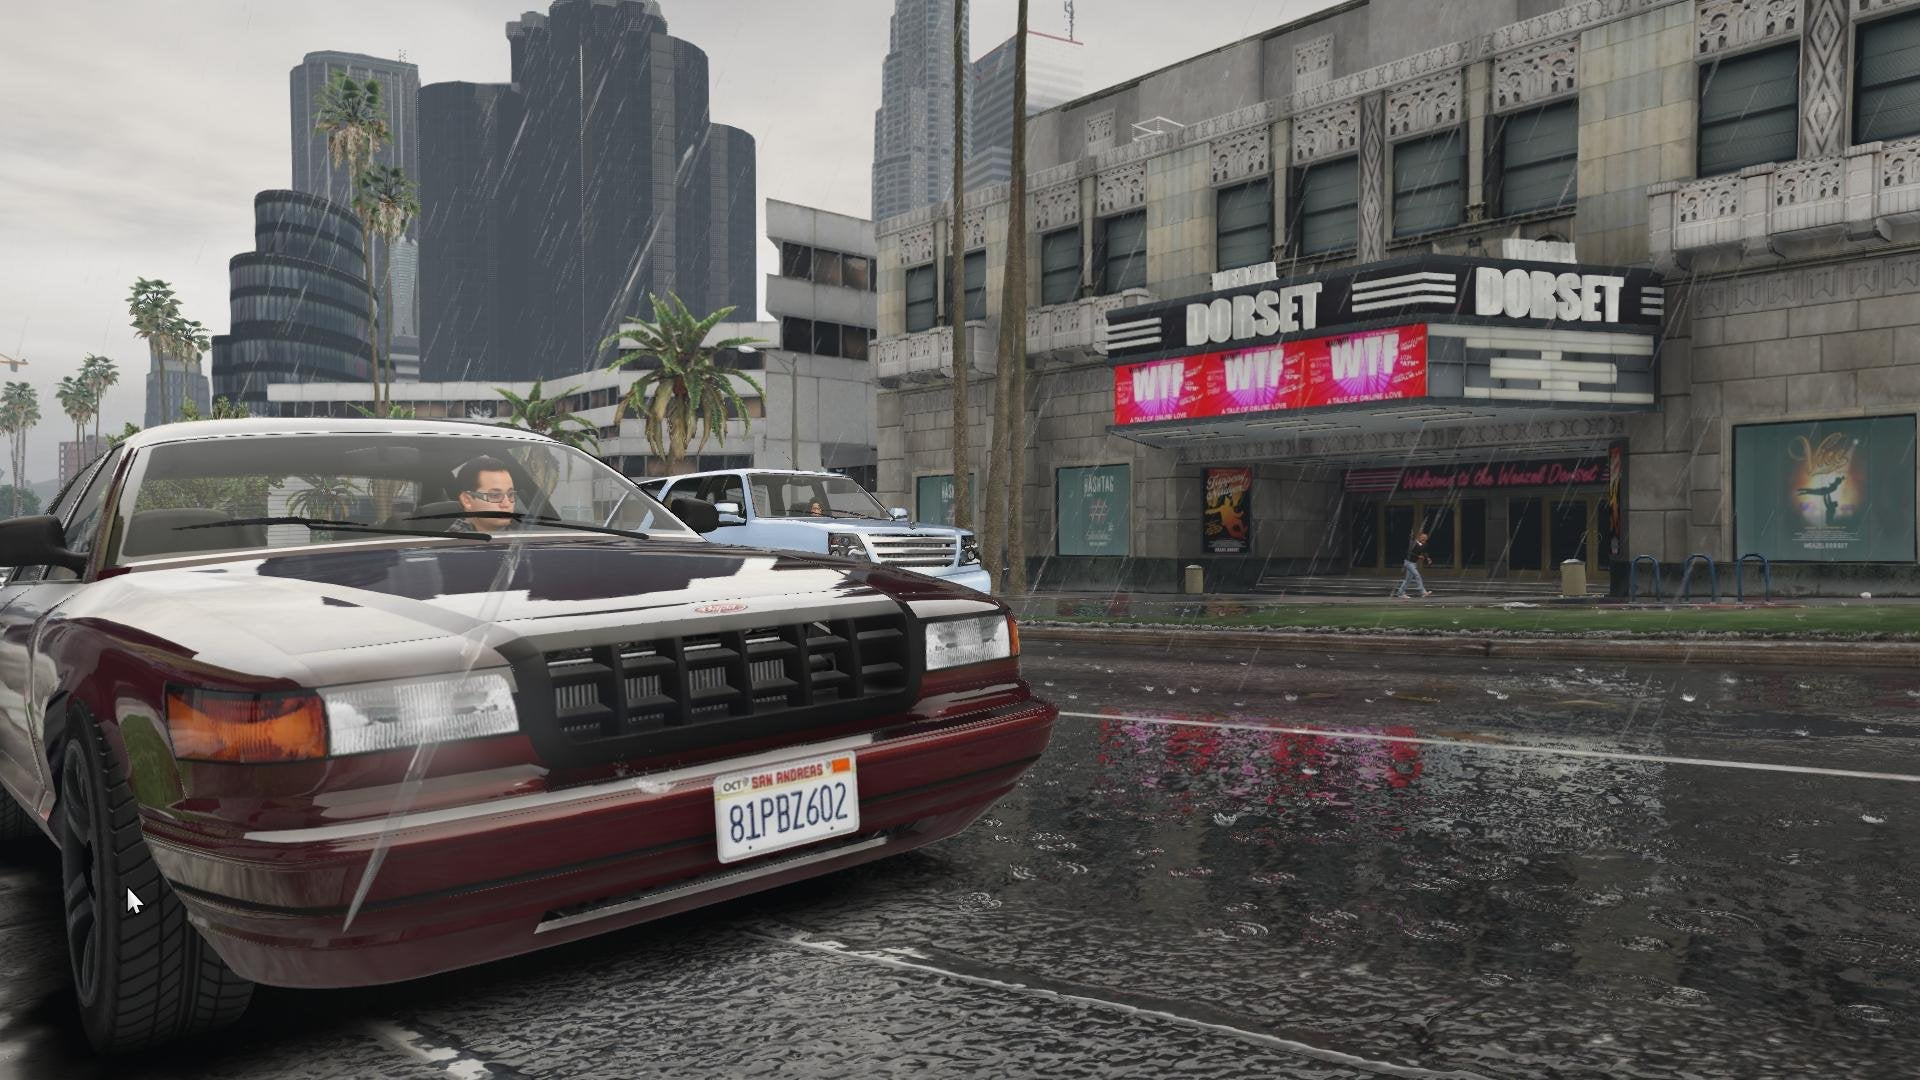 Gta 5 Pc Mod Responsible For Spreading Monero Mining